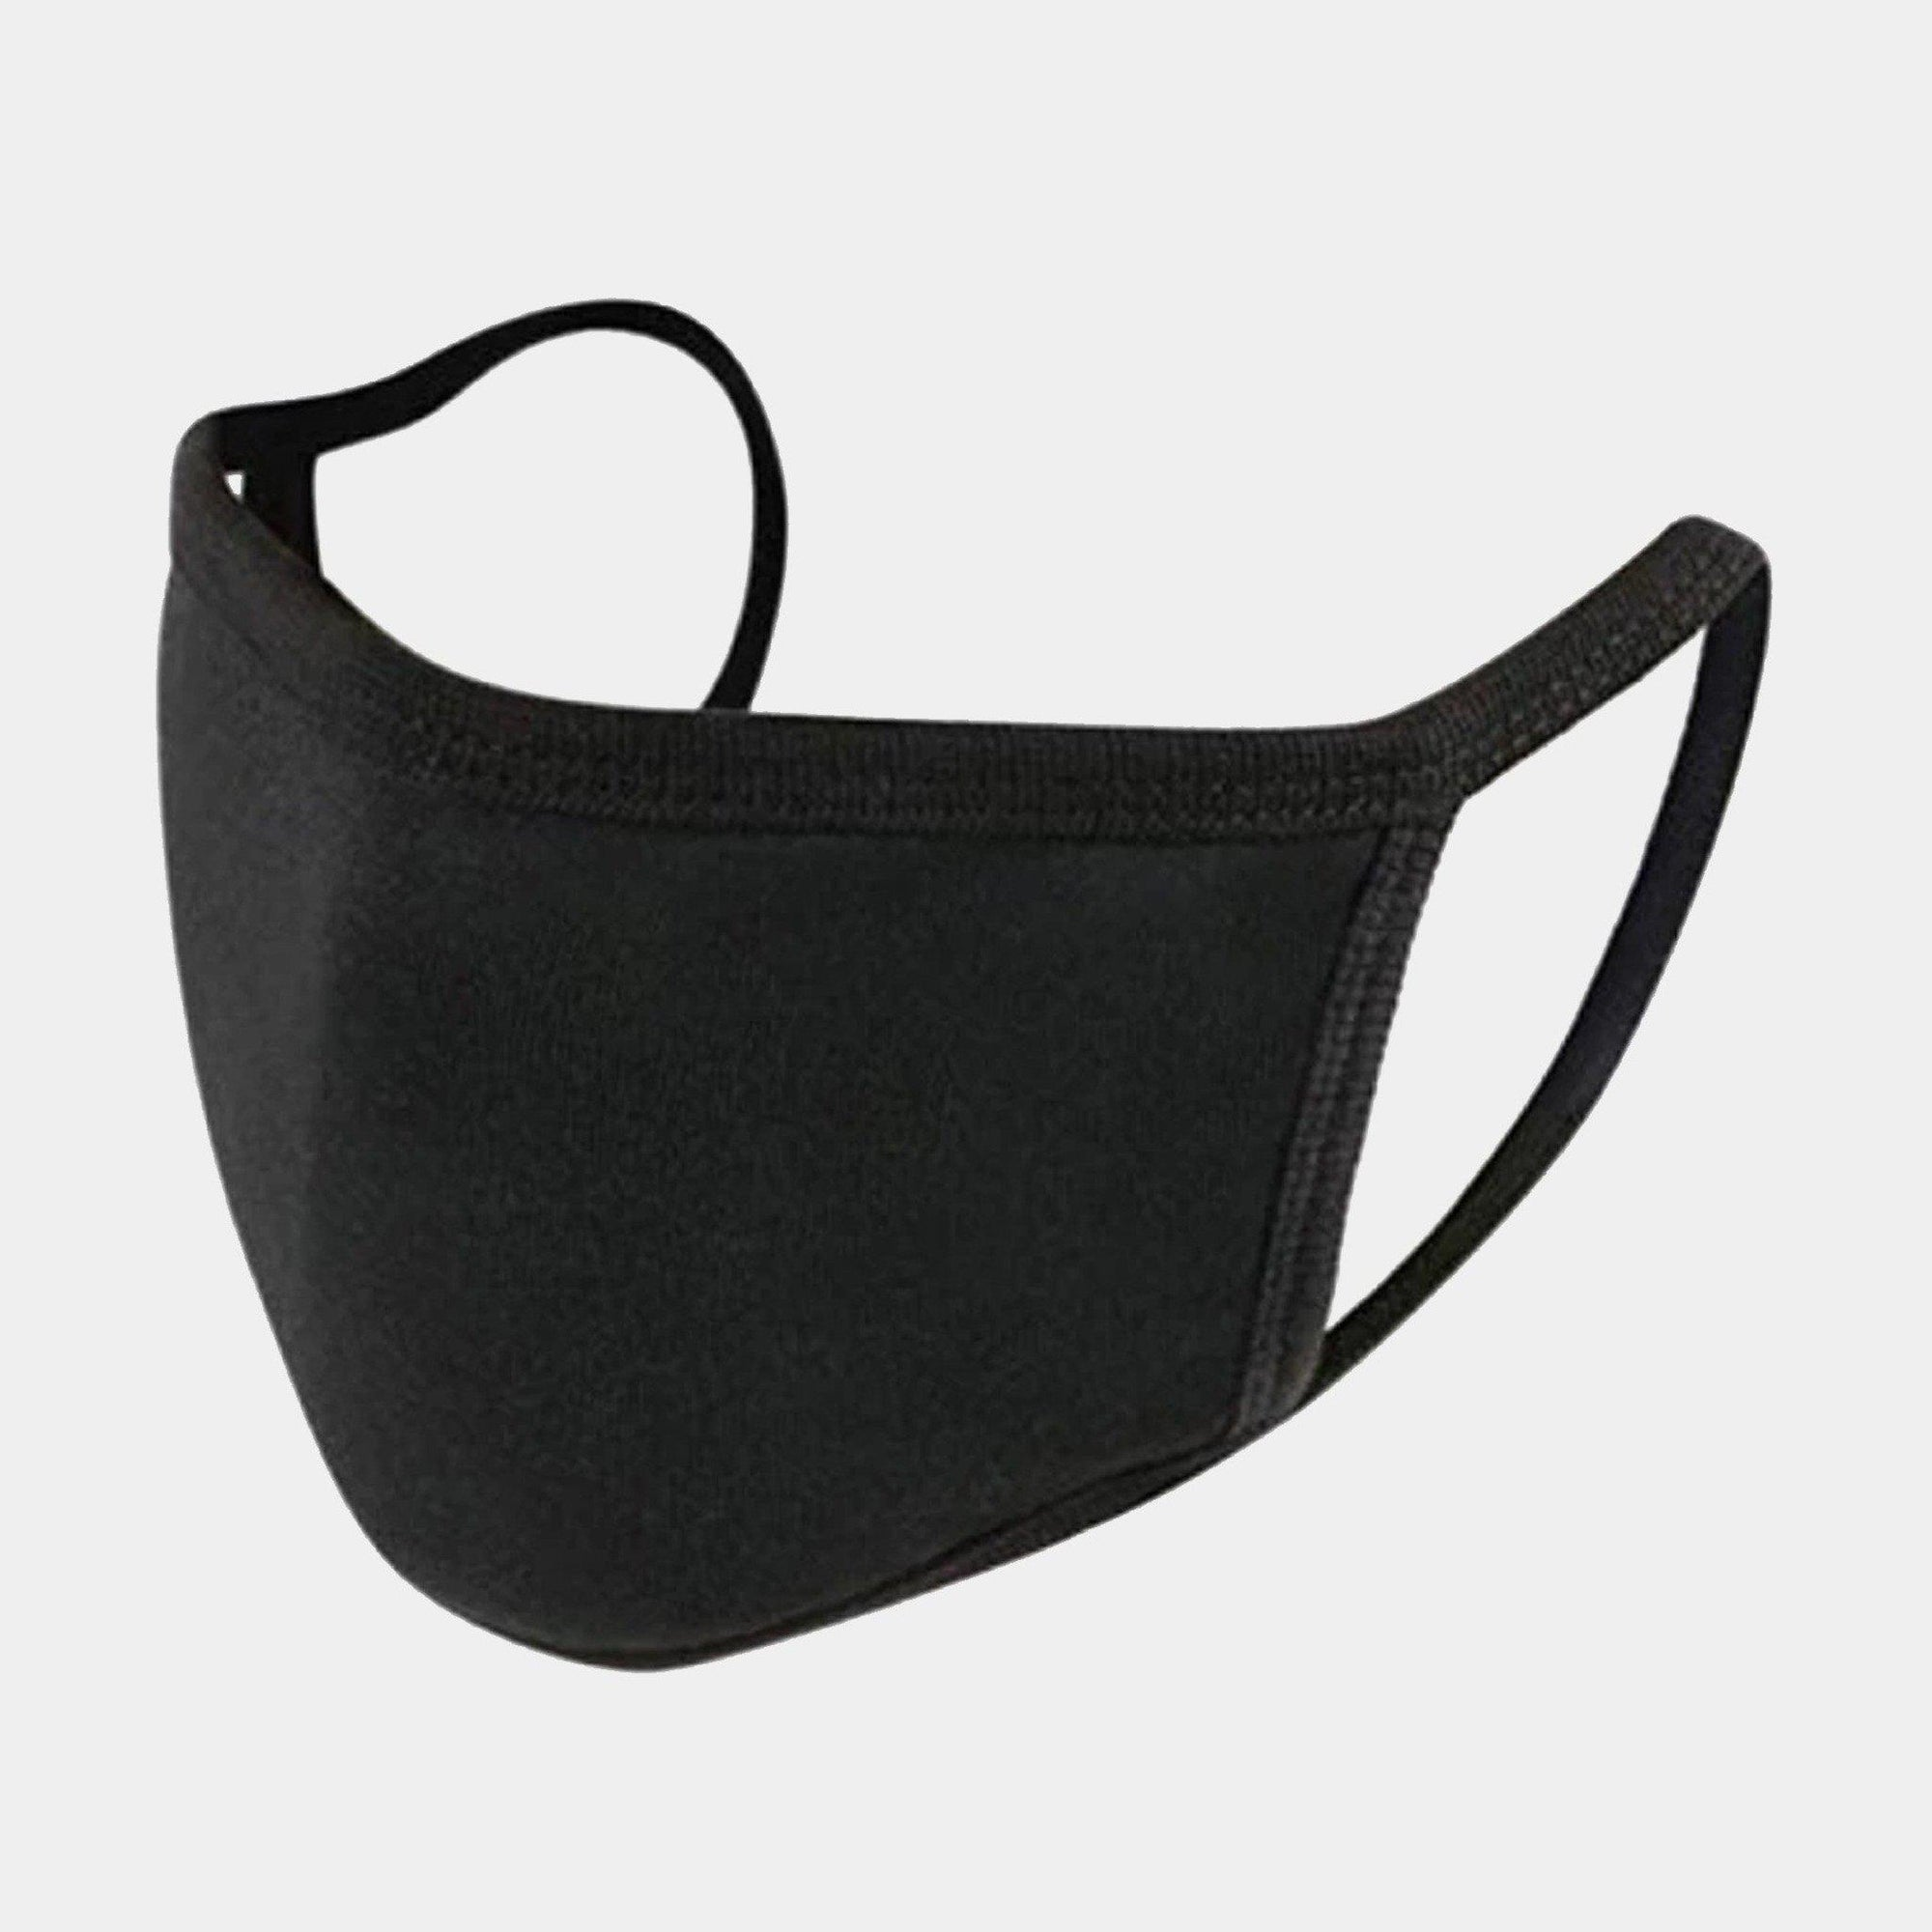 BLANK BLACK 2-LAYER FACE MASKS